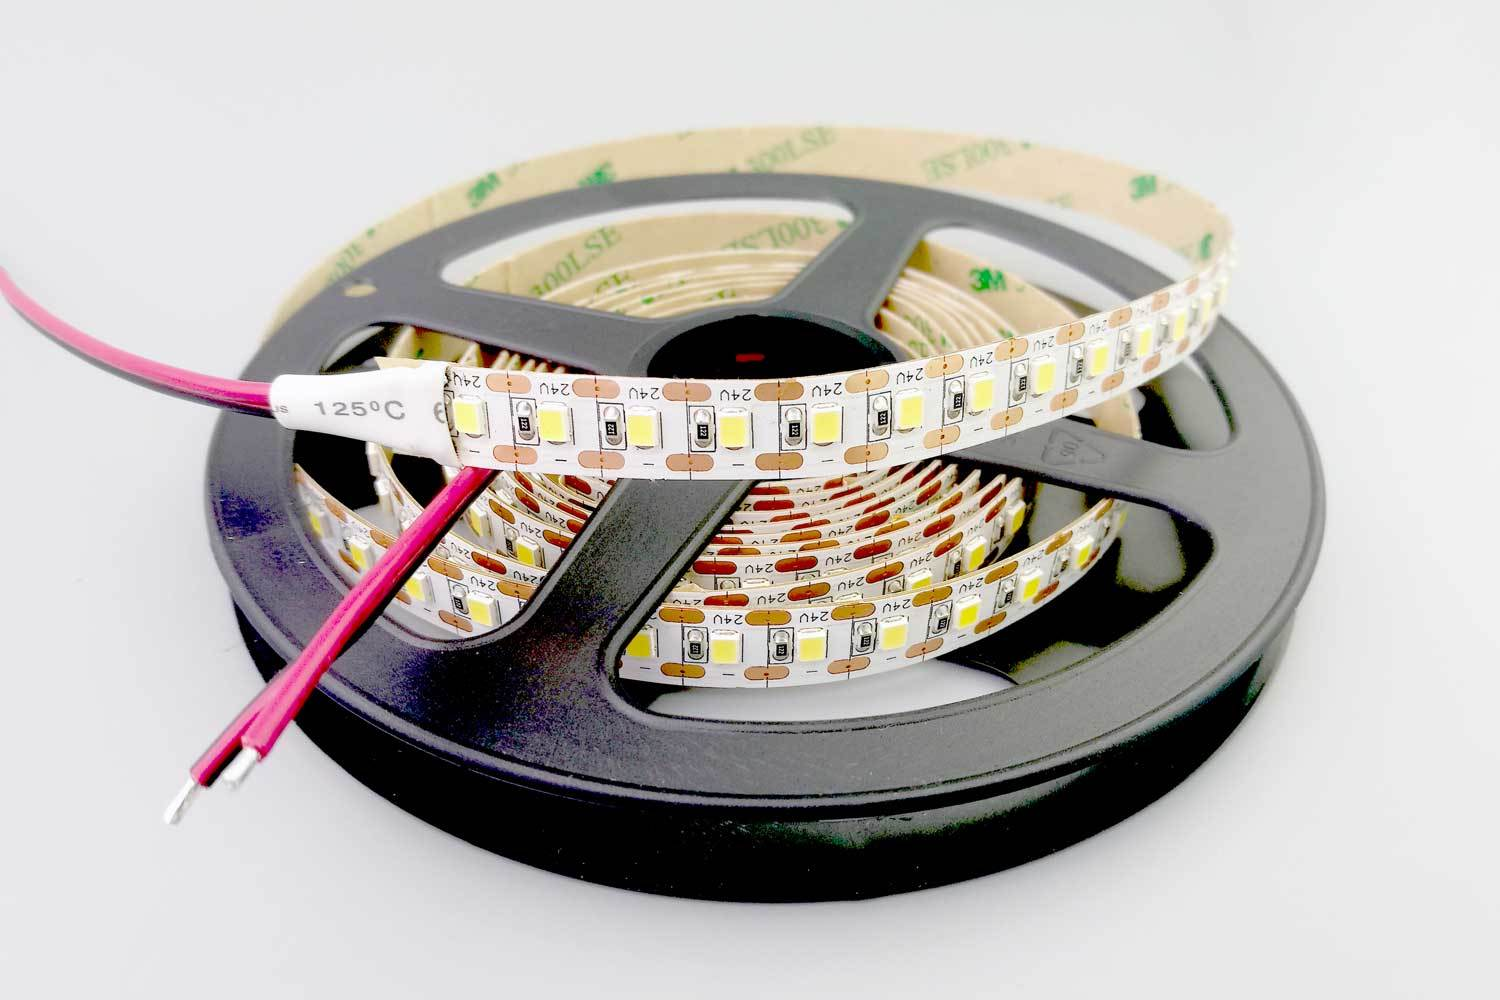 DeRun hot-sale cuttable led rope light for cabinet